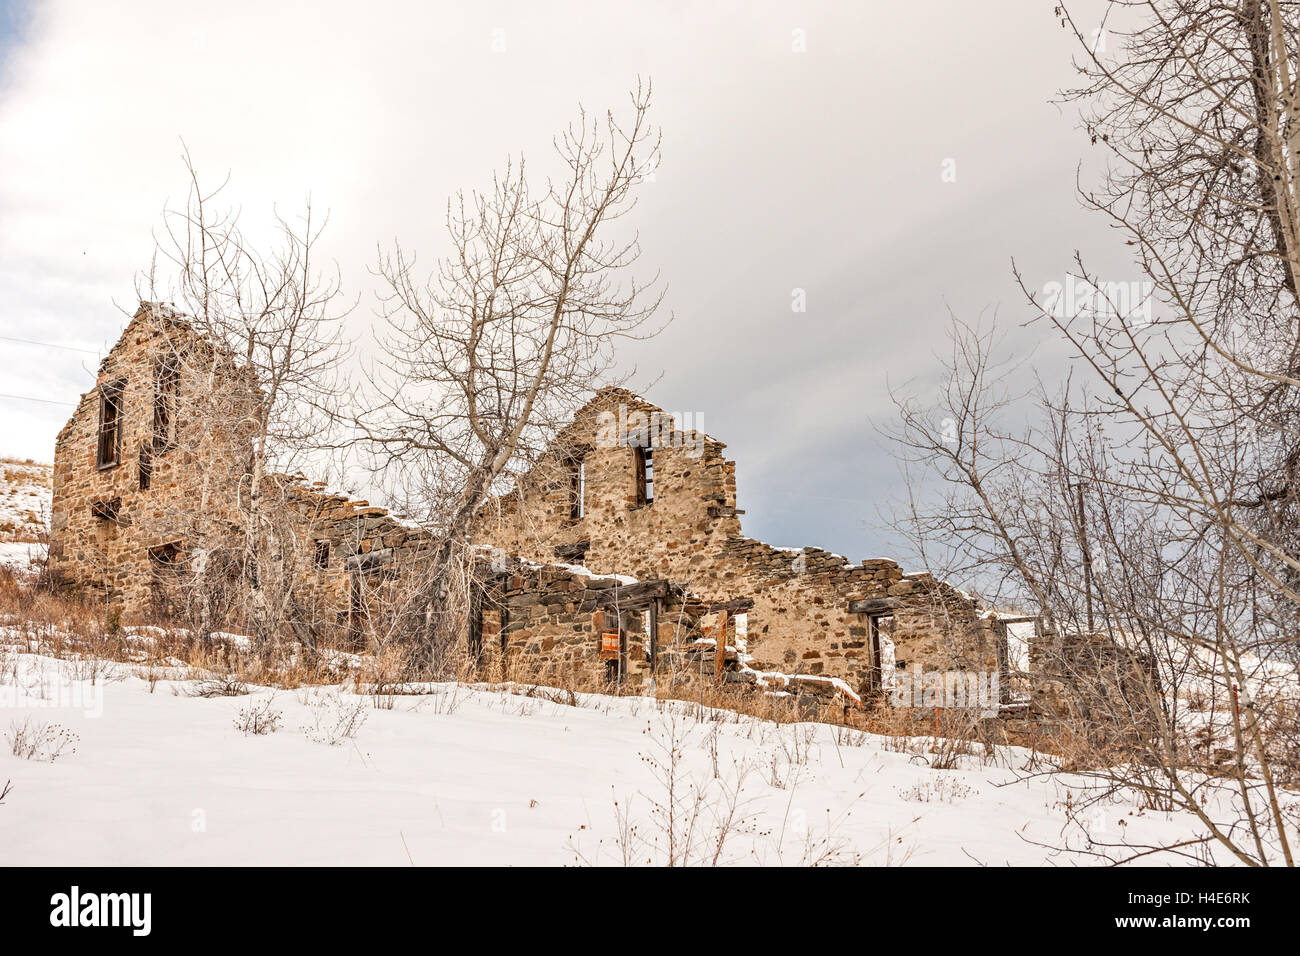 Remains of a twenty-stamp gold mill built in 1883 in Montana on a winter day - Stock Image